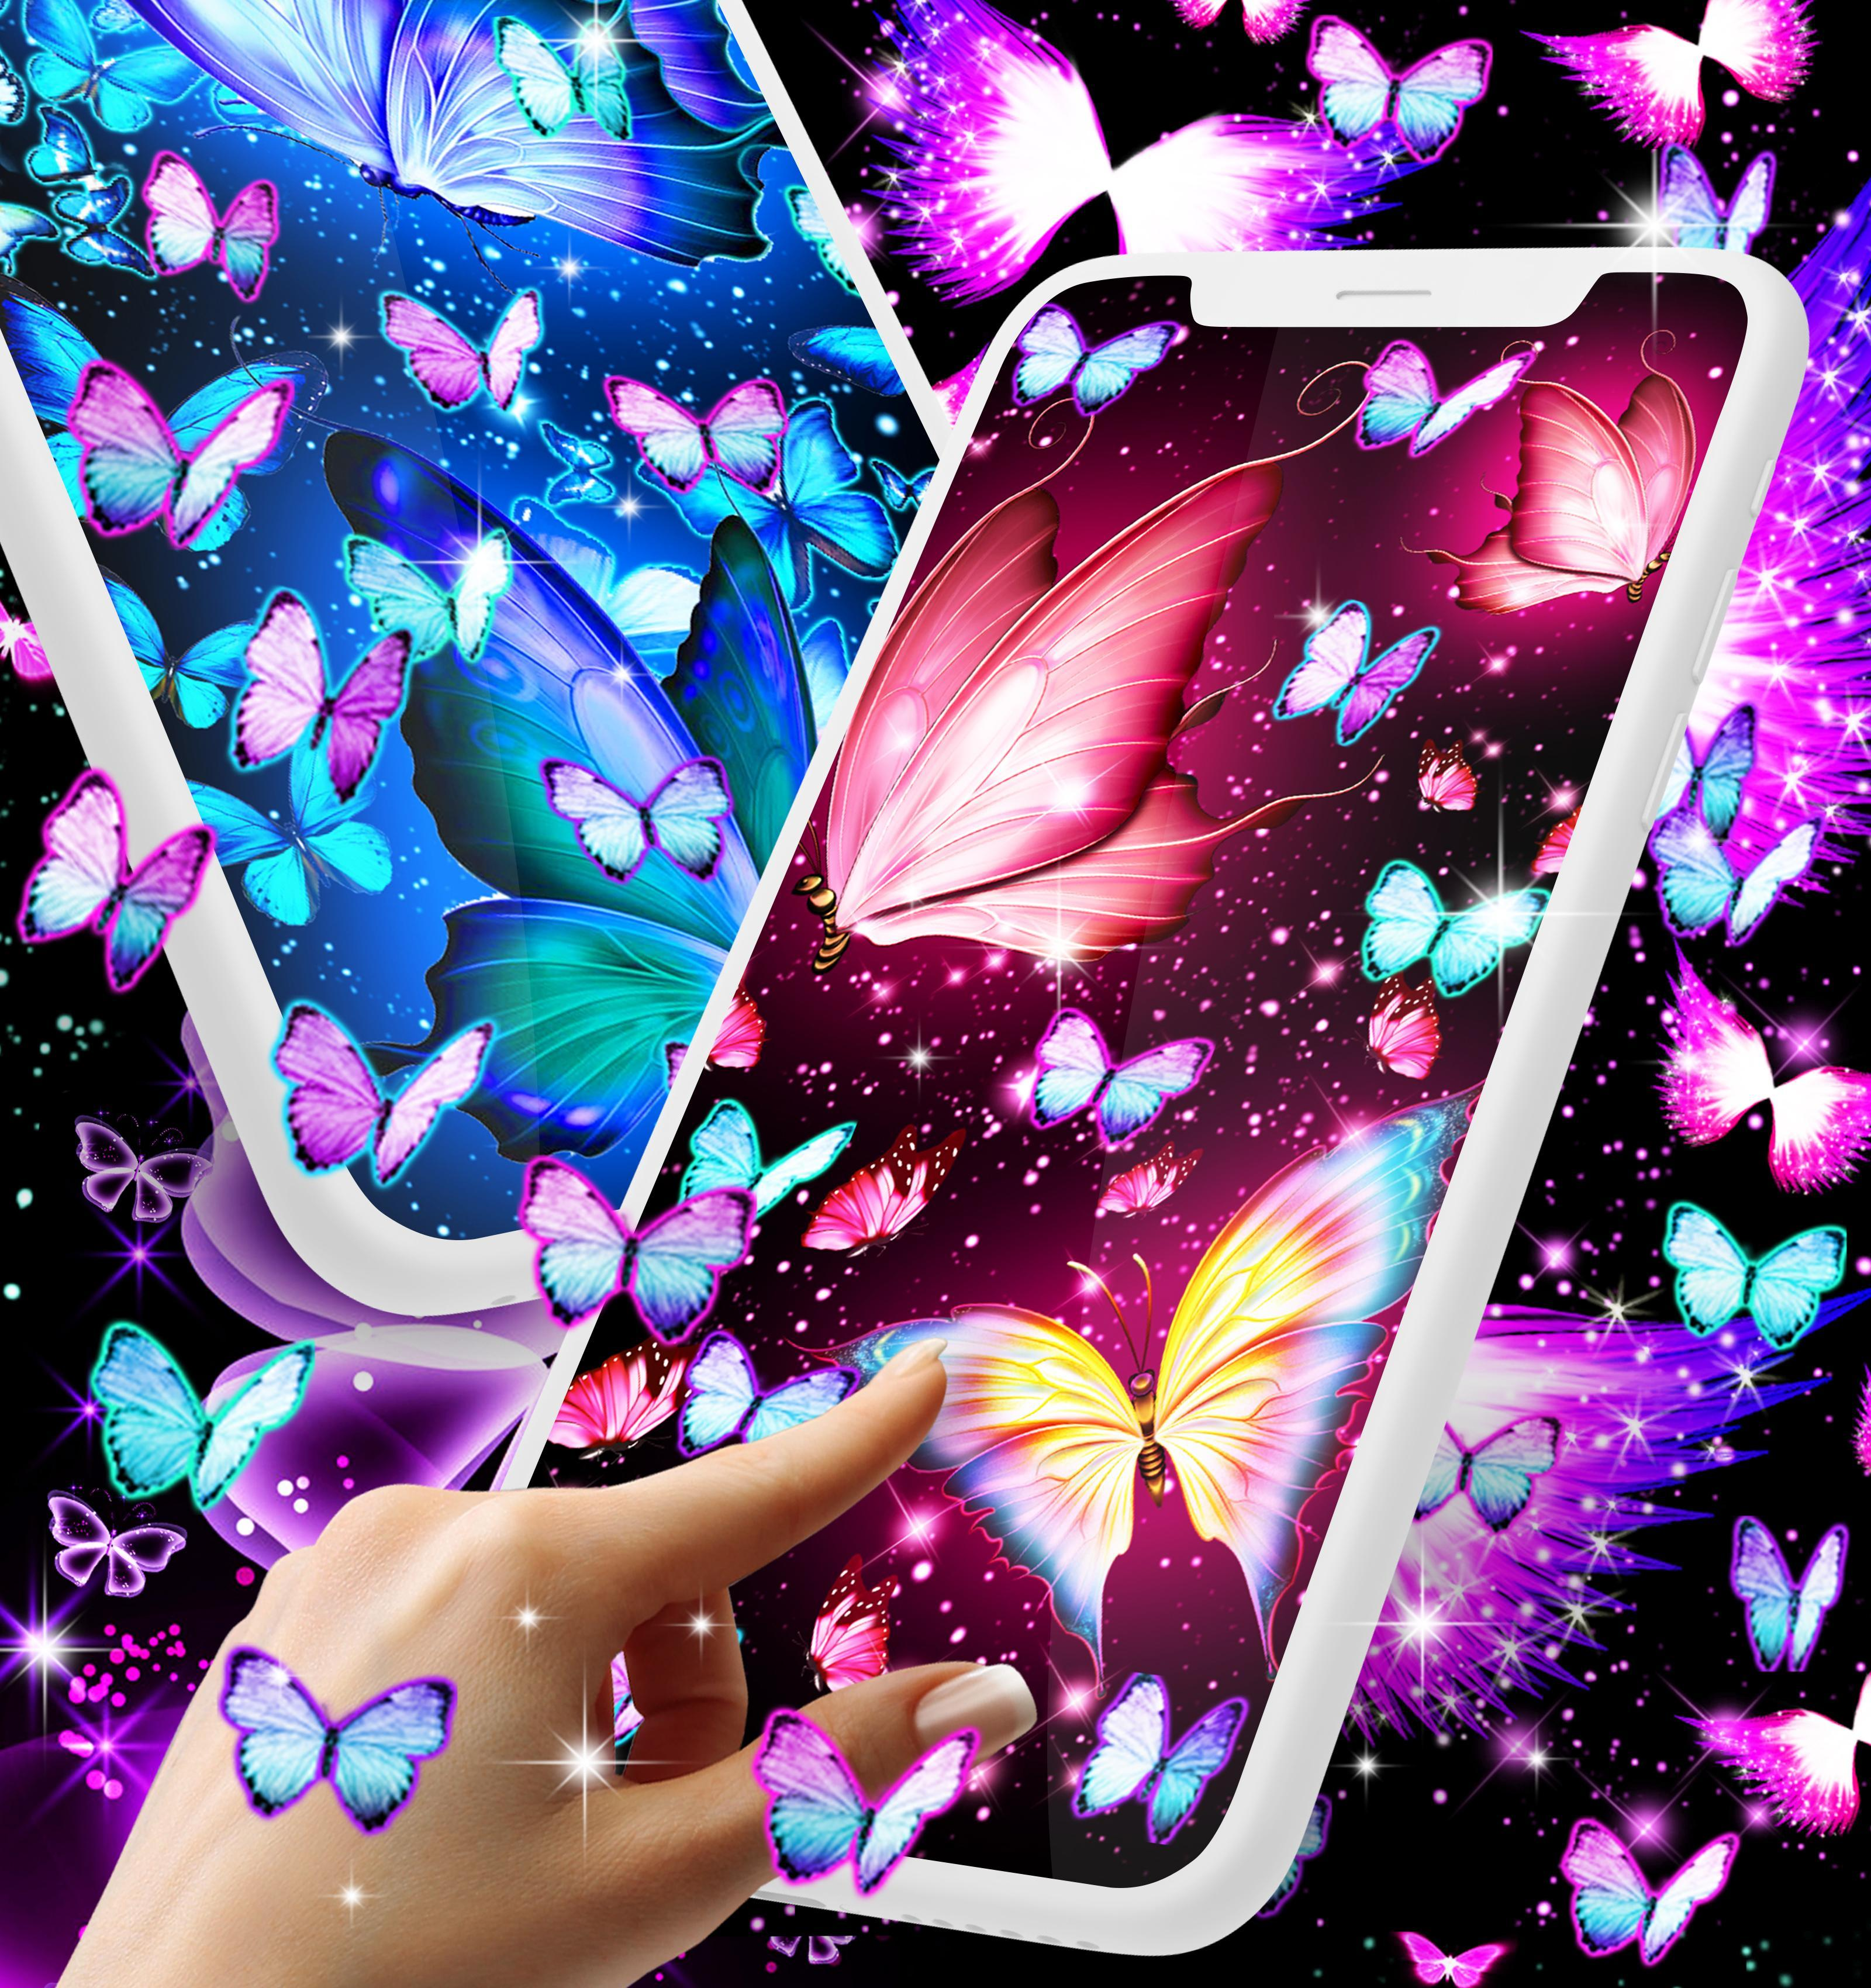 Neon Butterflies Glowing Live Wallpaper For Android Apk Download